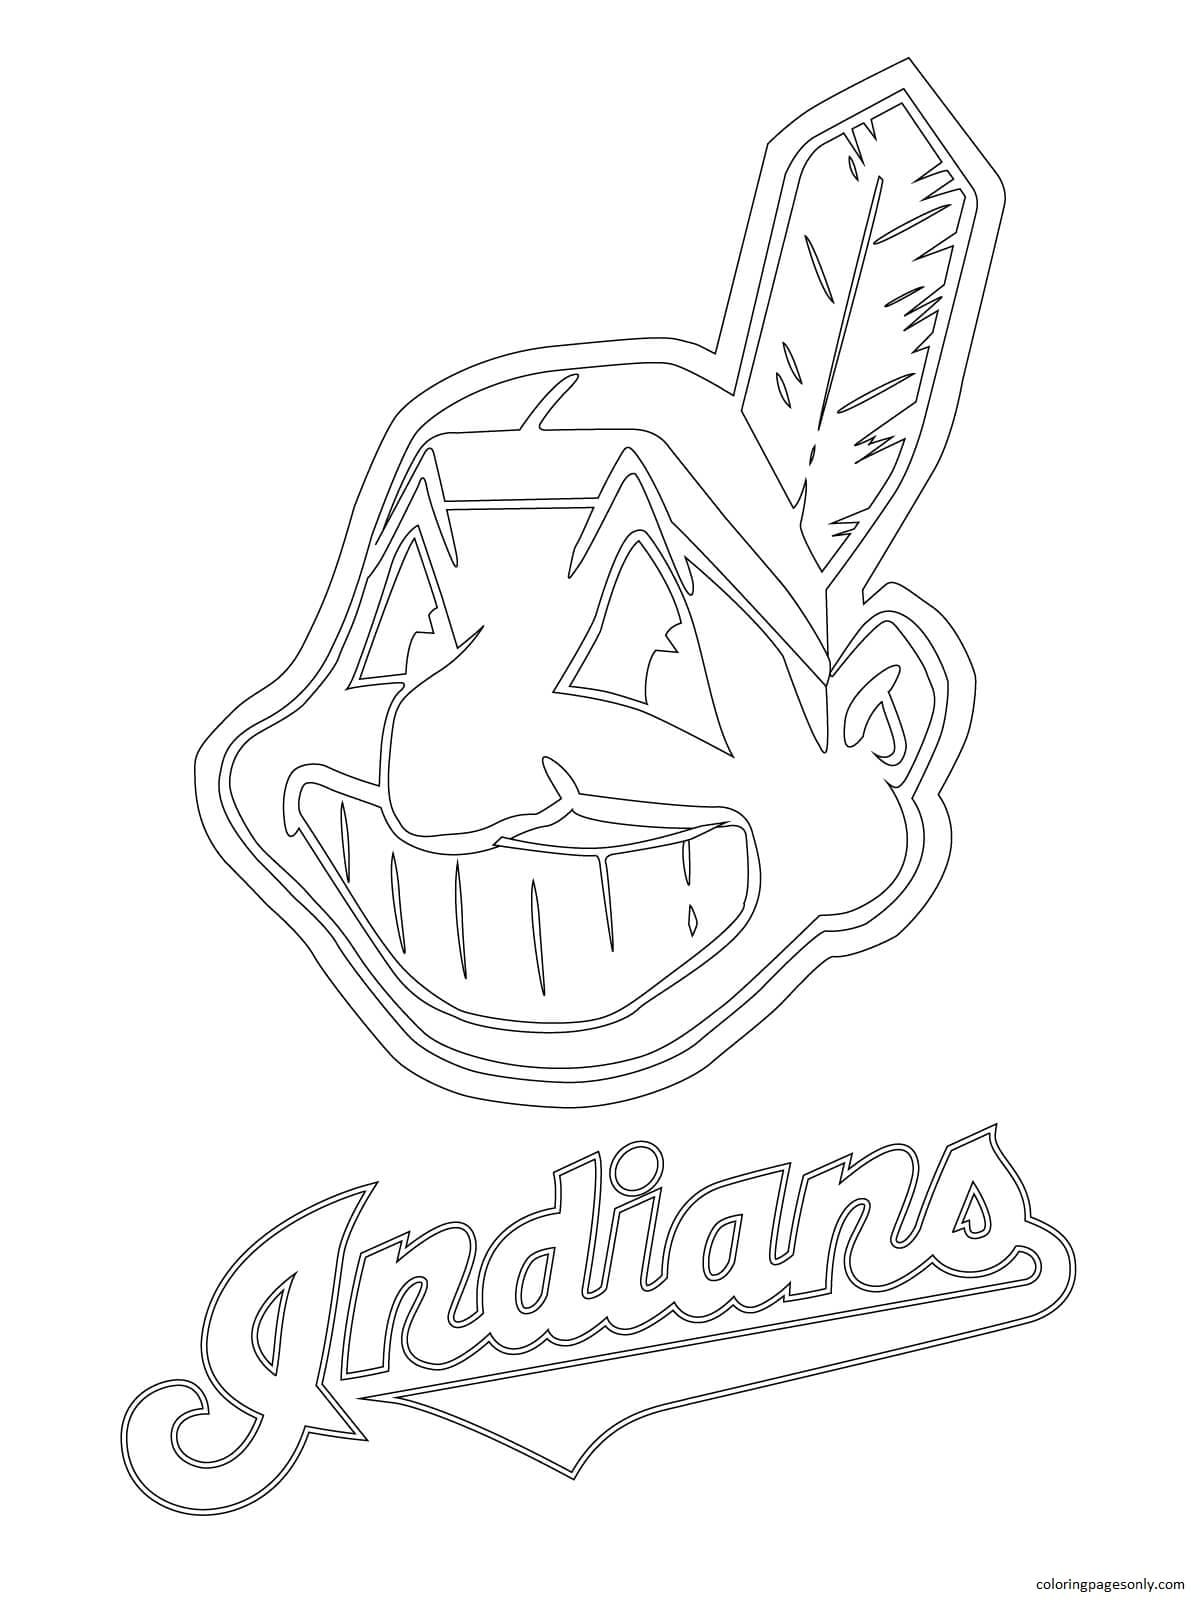 Clevelend Indians Logo Coloring Page